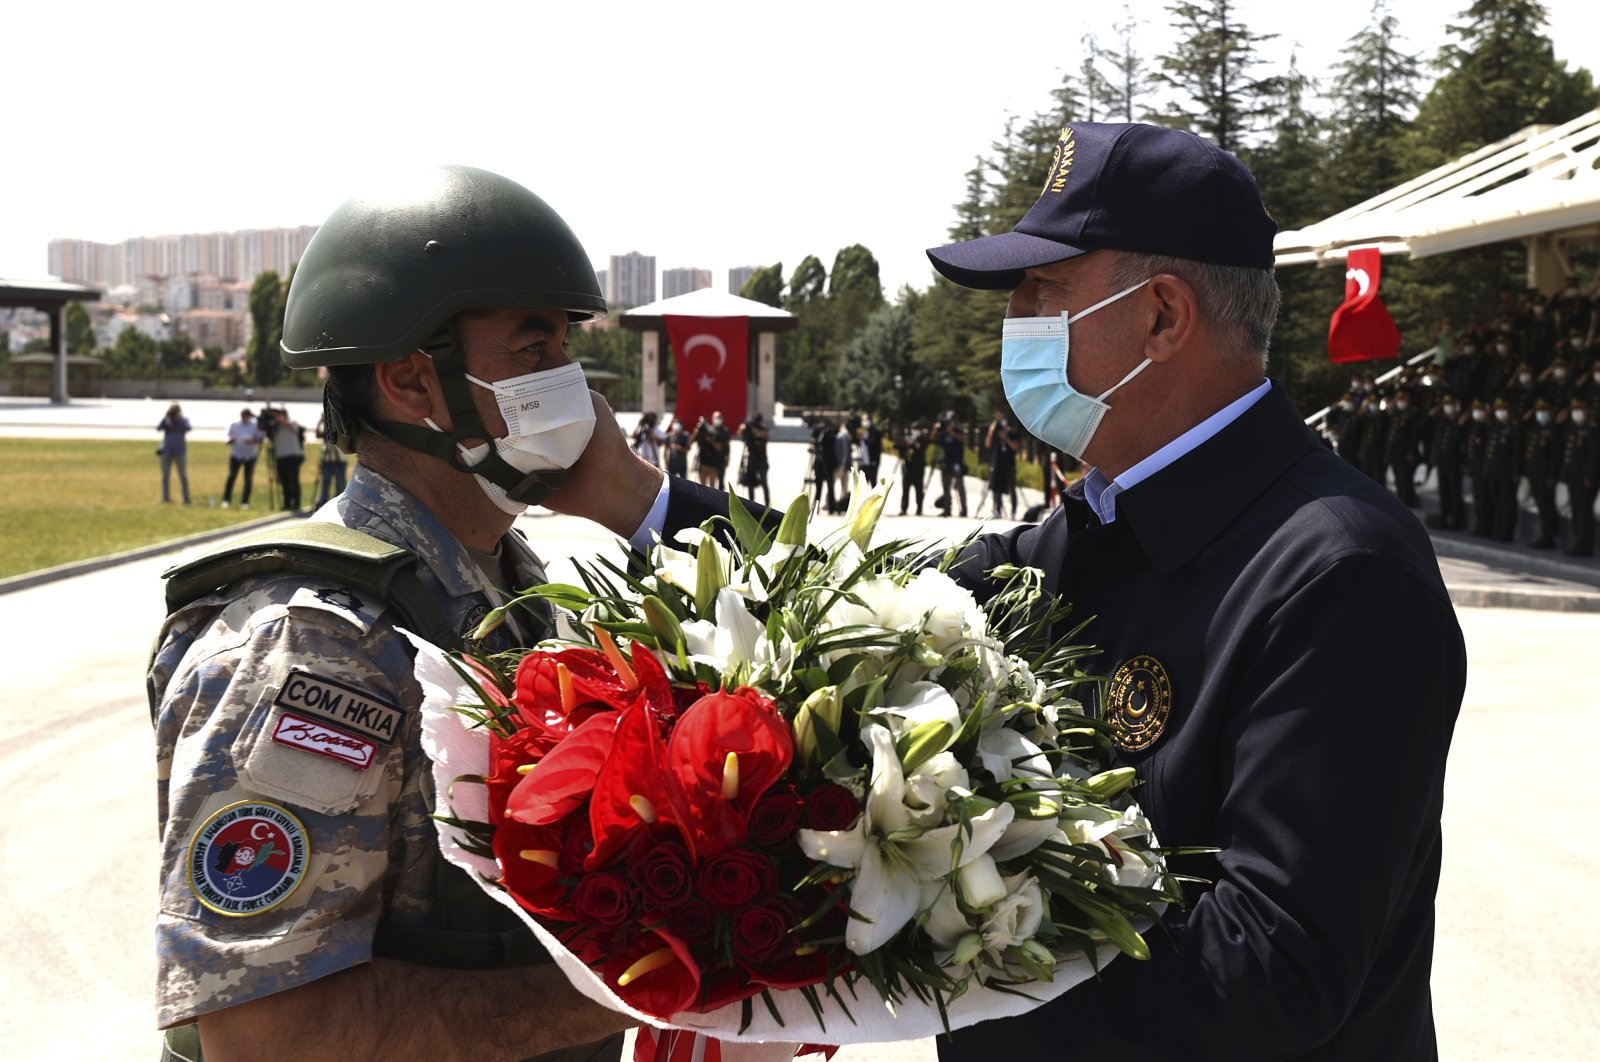 Turkey's Defense Minister Hulusi Akar welcomes an army officer who returned from Kabul, Afghanistan, during a ceremony at Esenboğa Airport, Ankara, Turkey, Aug. 28, 2021. (AP Photo)